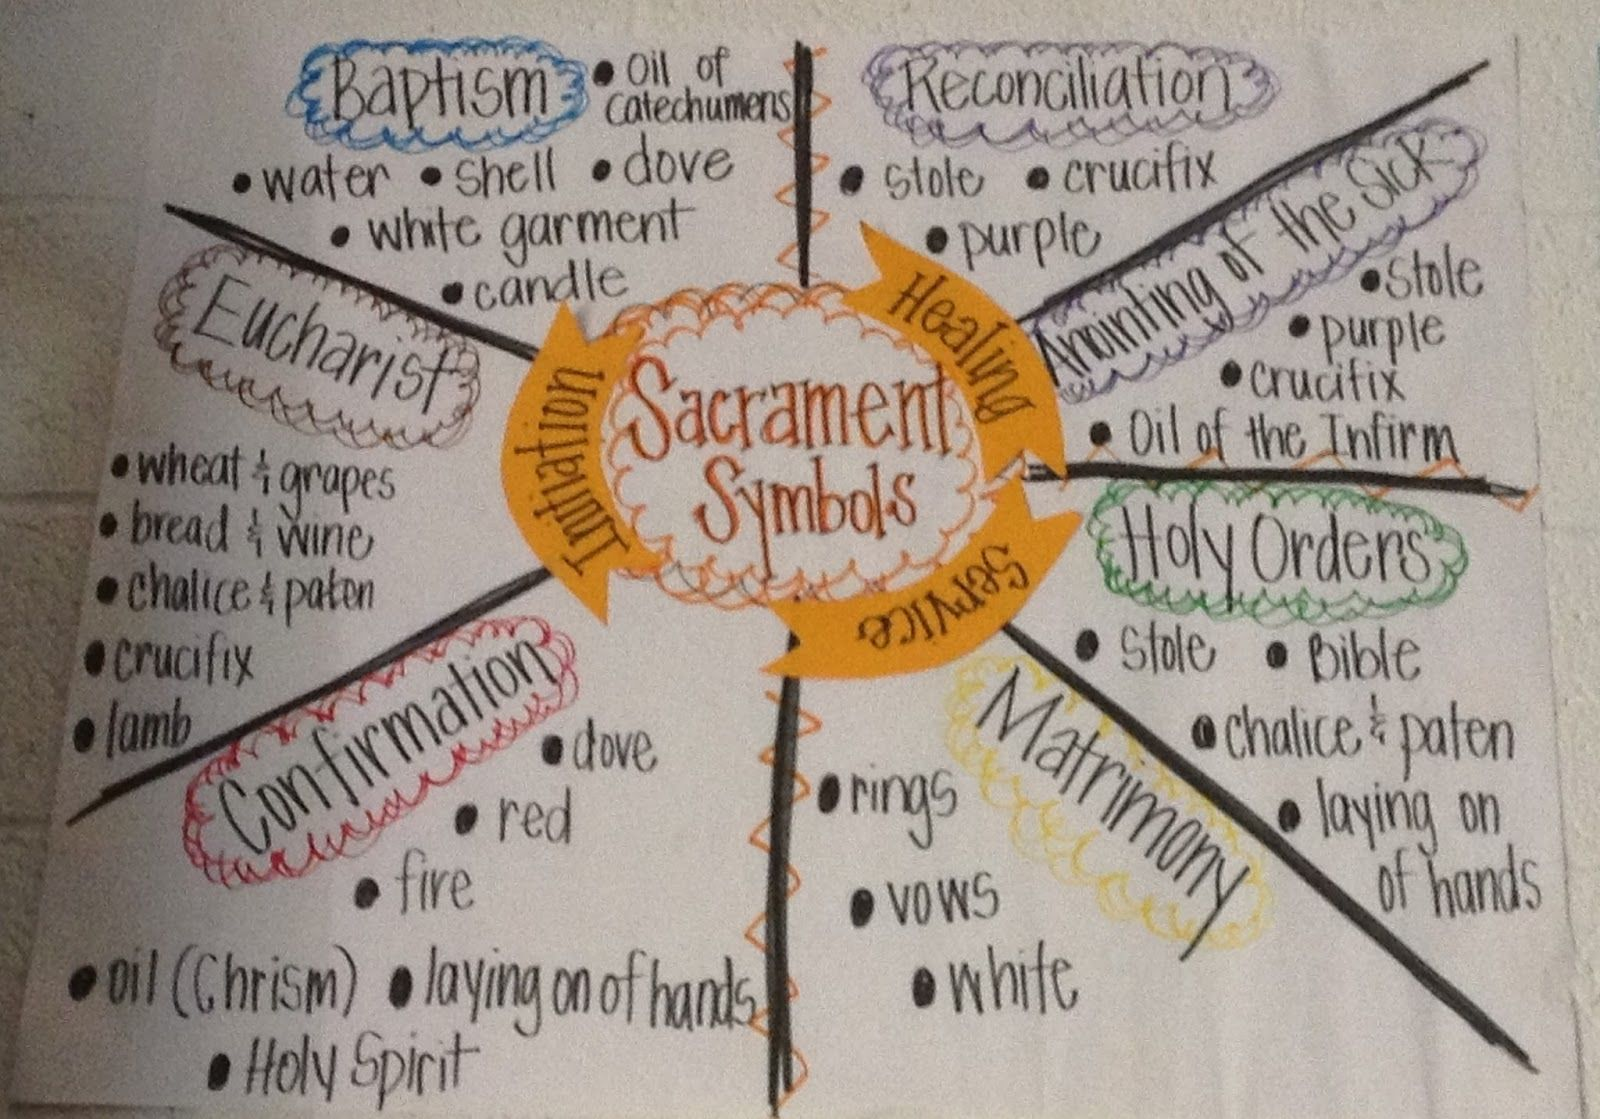 Symbol of confirmation image collections symbol and sign ideas symbols used in the sacrament of baptism gallery symbol and sign confirmation activities for children yahoo biocorpaavc